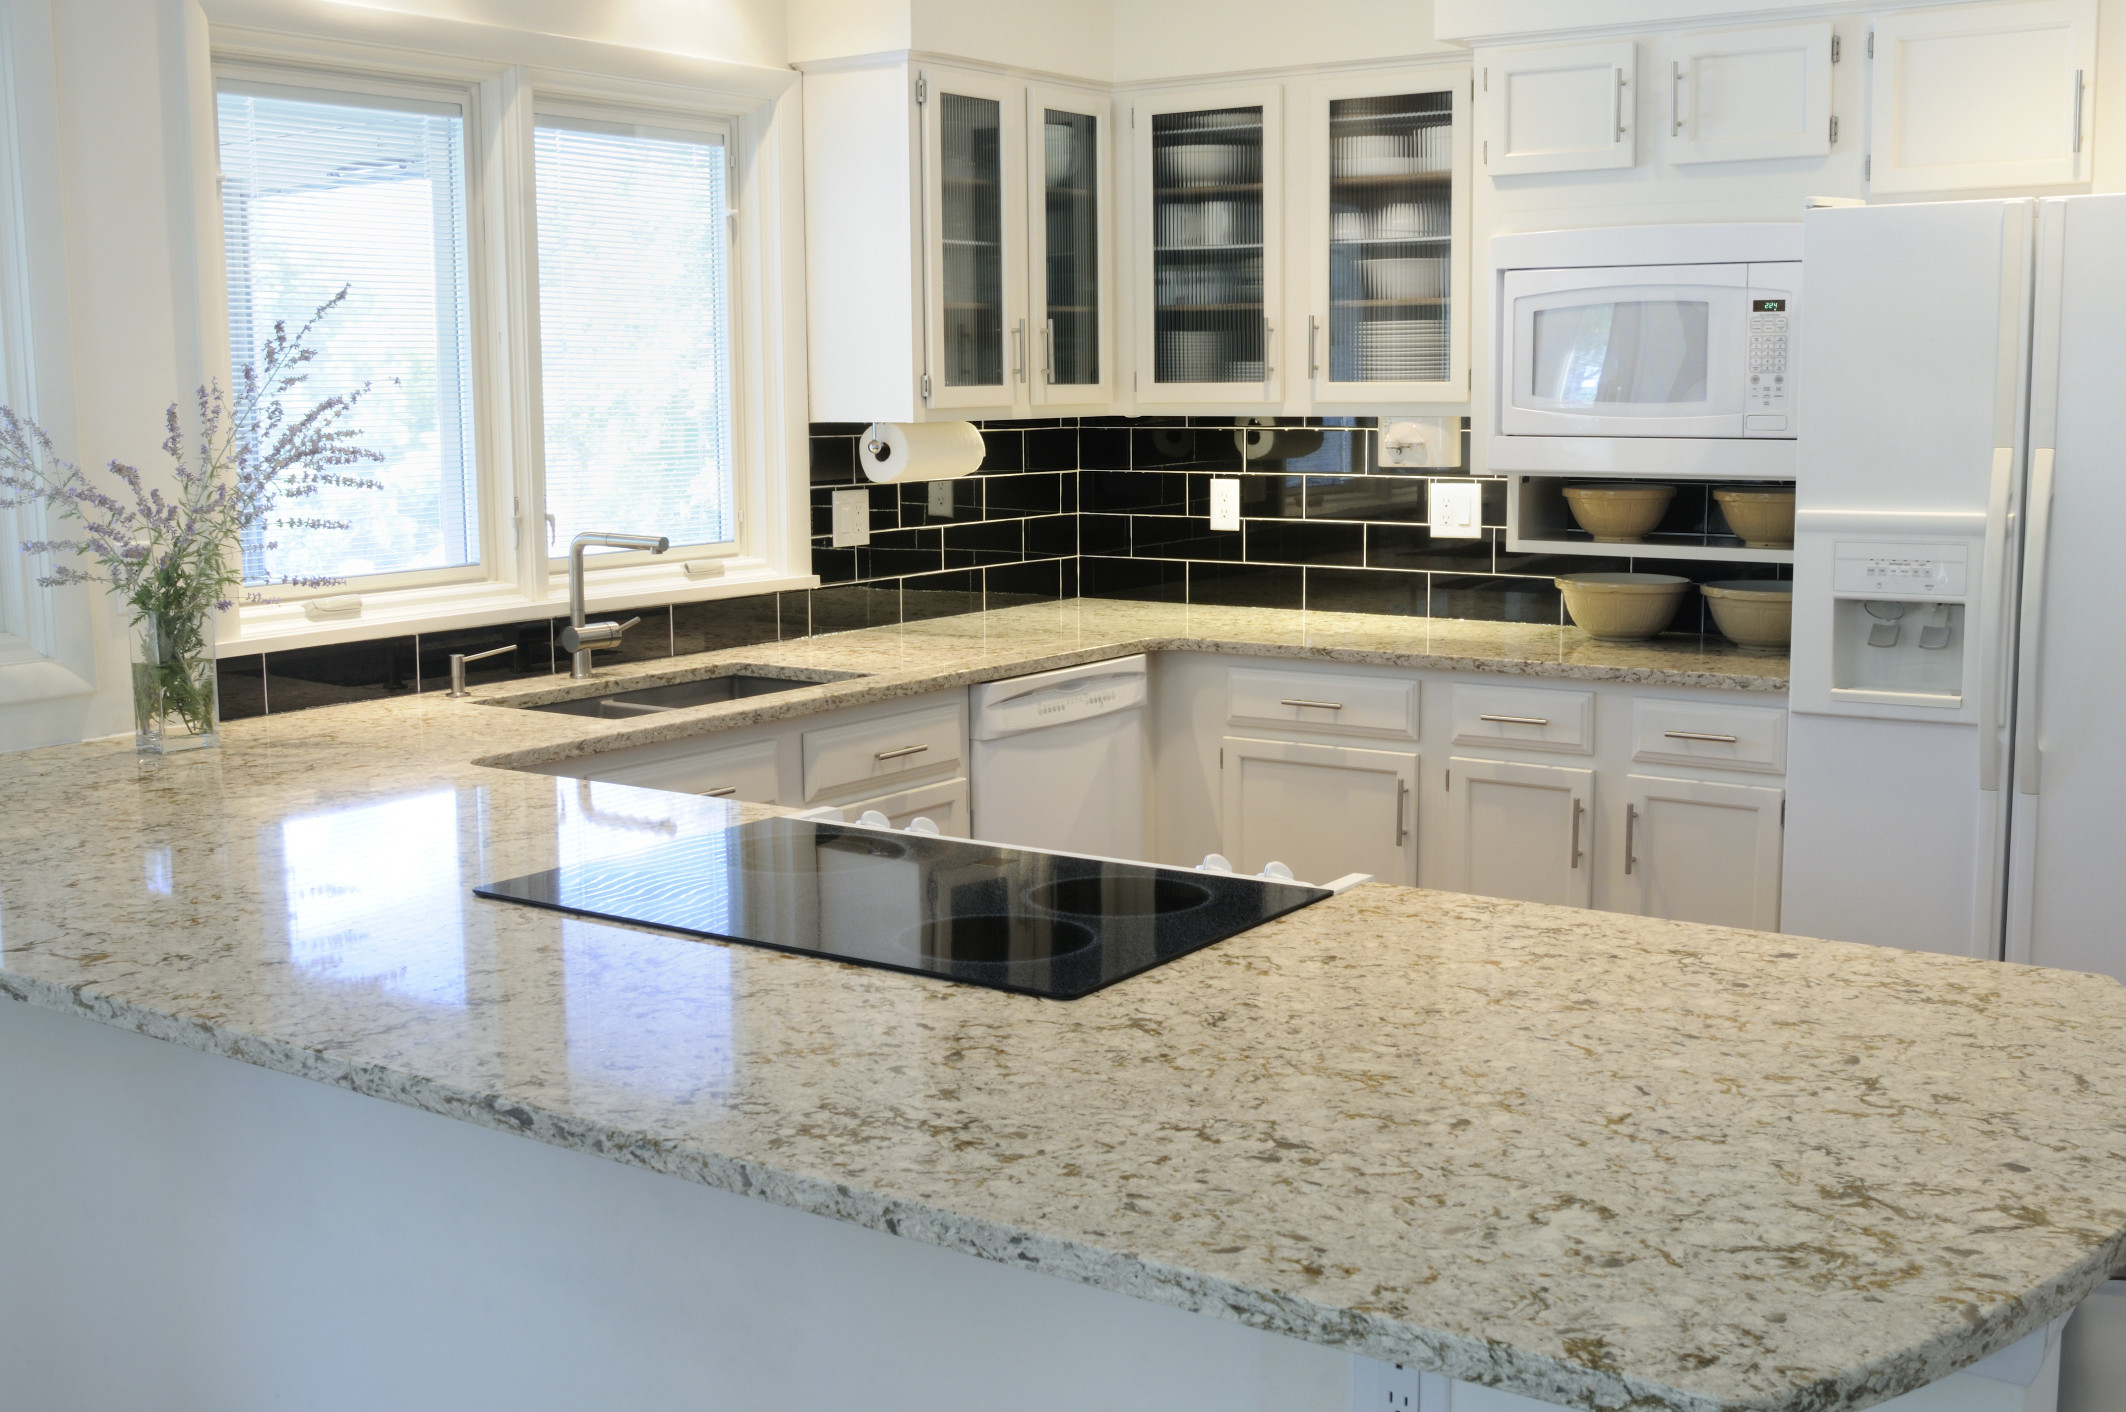 granite countertop alternatives n countertops for kitchens quartz countertop